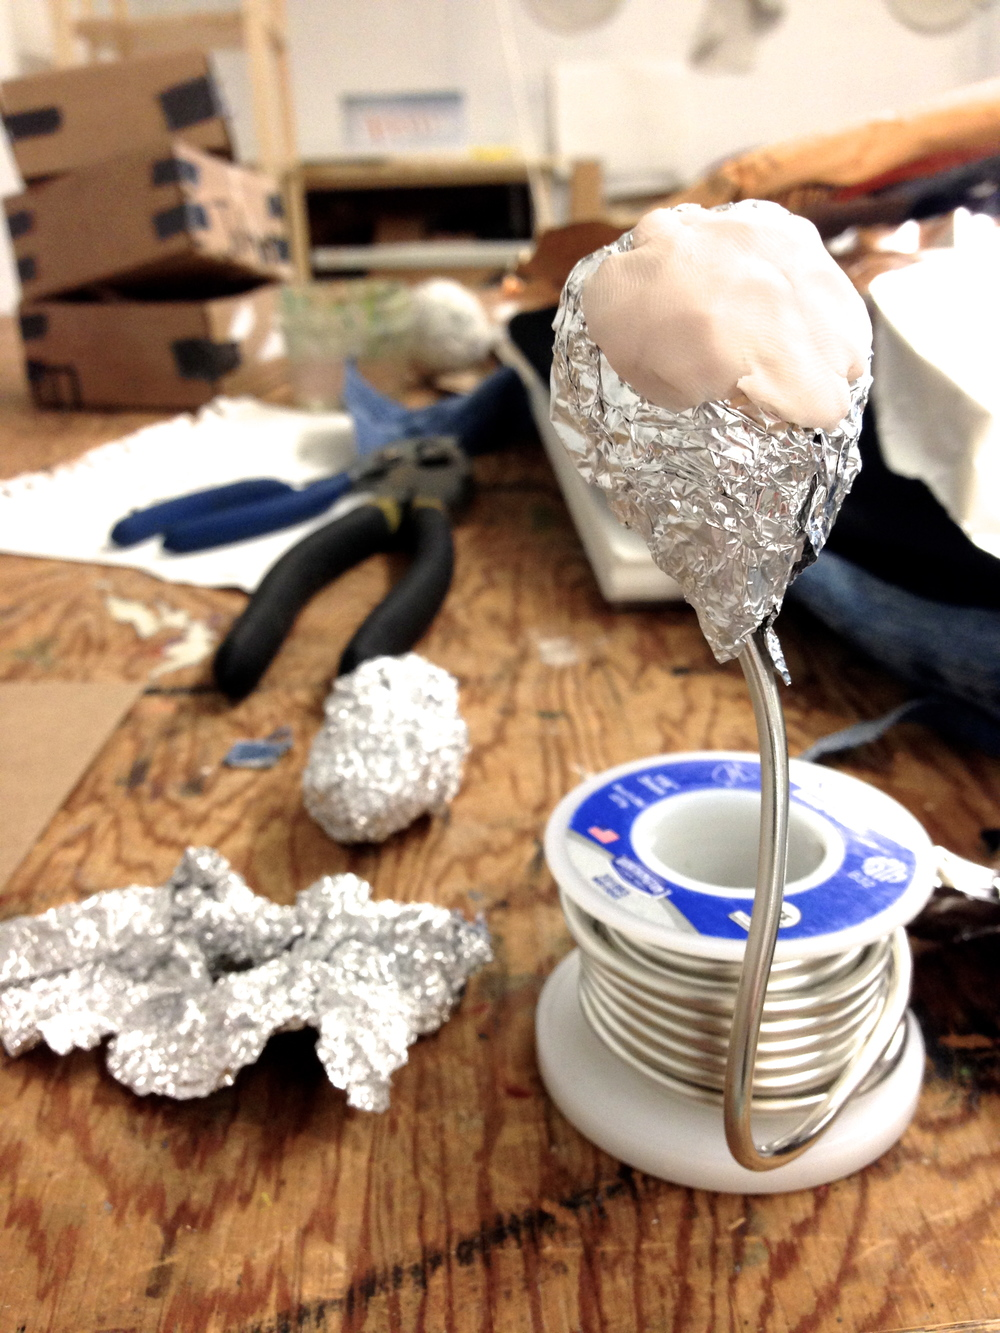 I'm using tin foil as the base of my clay head to avoid explosion in the oven and to keep it light.